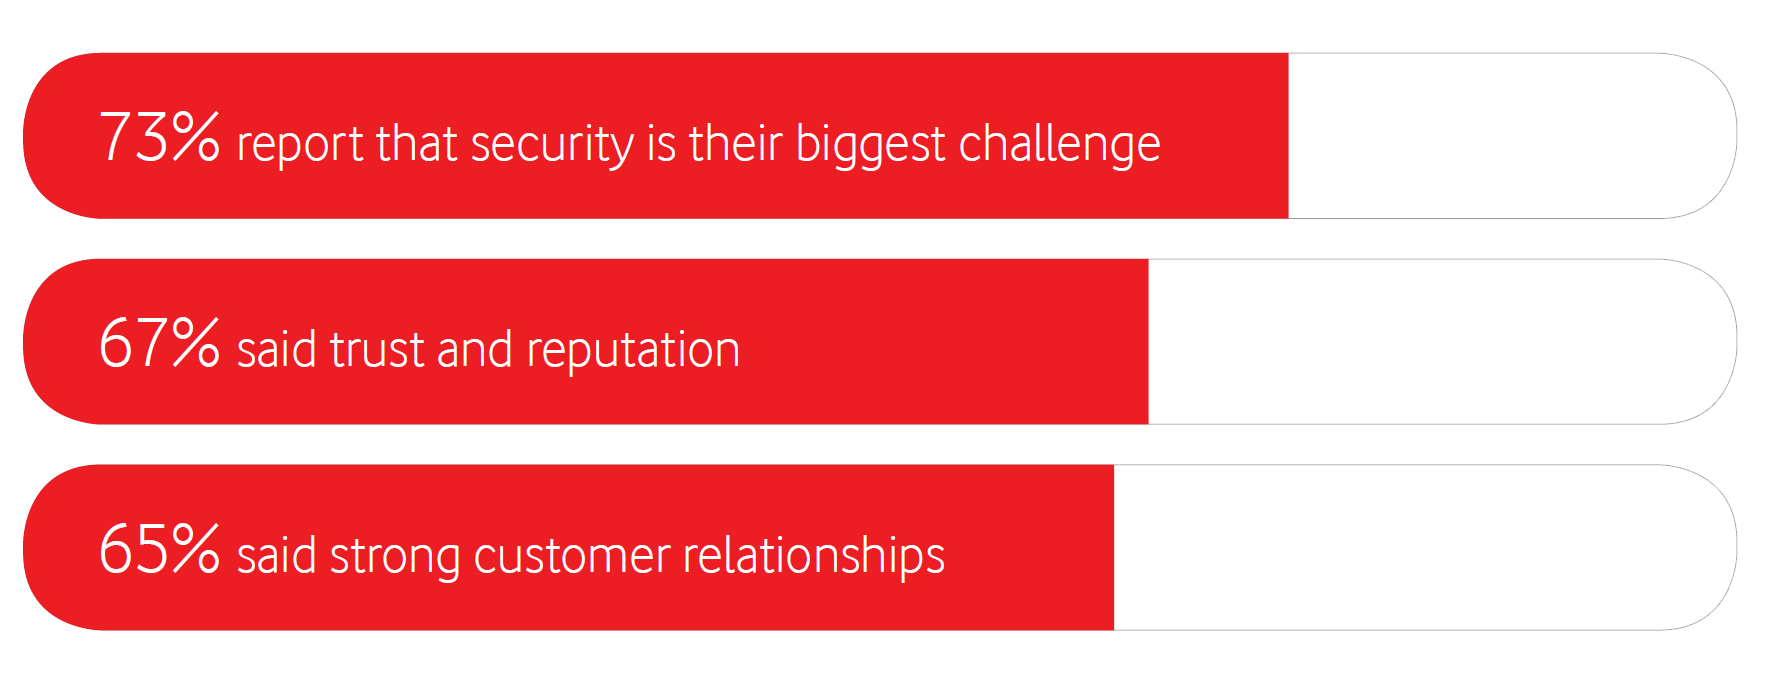 73% report that security is their biggest challenge, 67% said trust and reputation, 65% said strong customer relationships